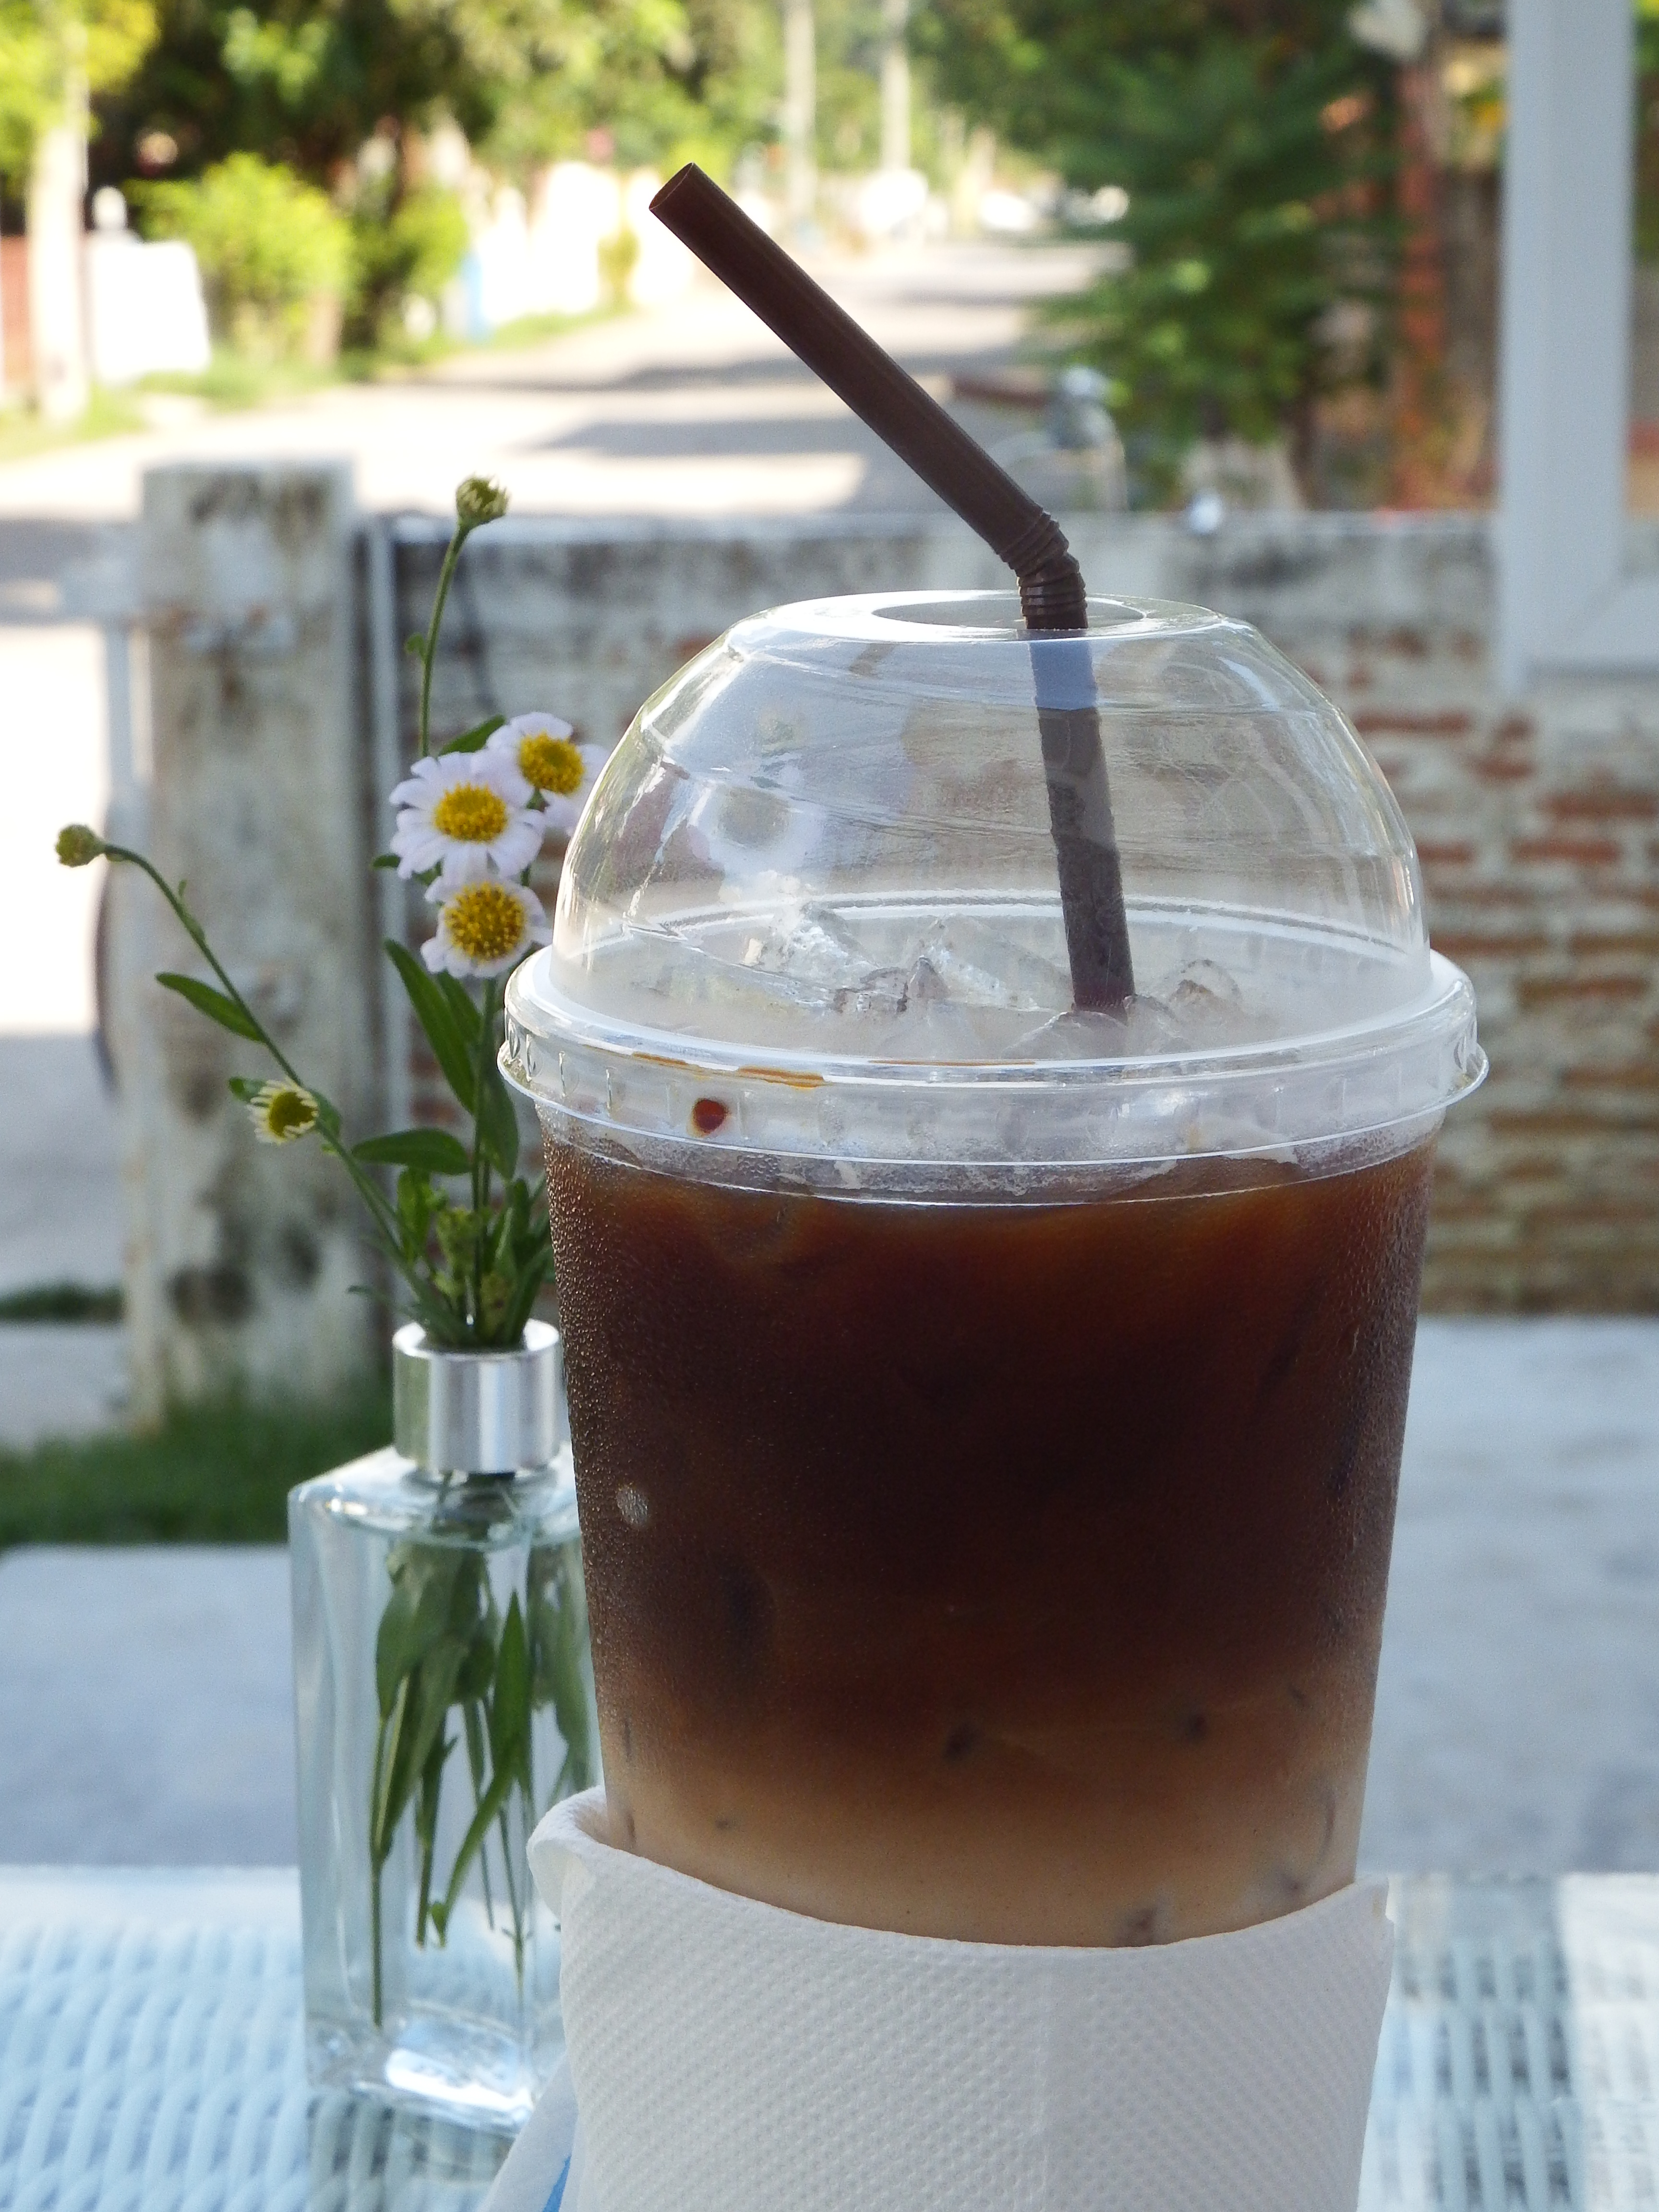 Iced Coffee in the Garden, Beverage, Cafe, Coffee, Drink, HQ Photo